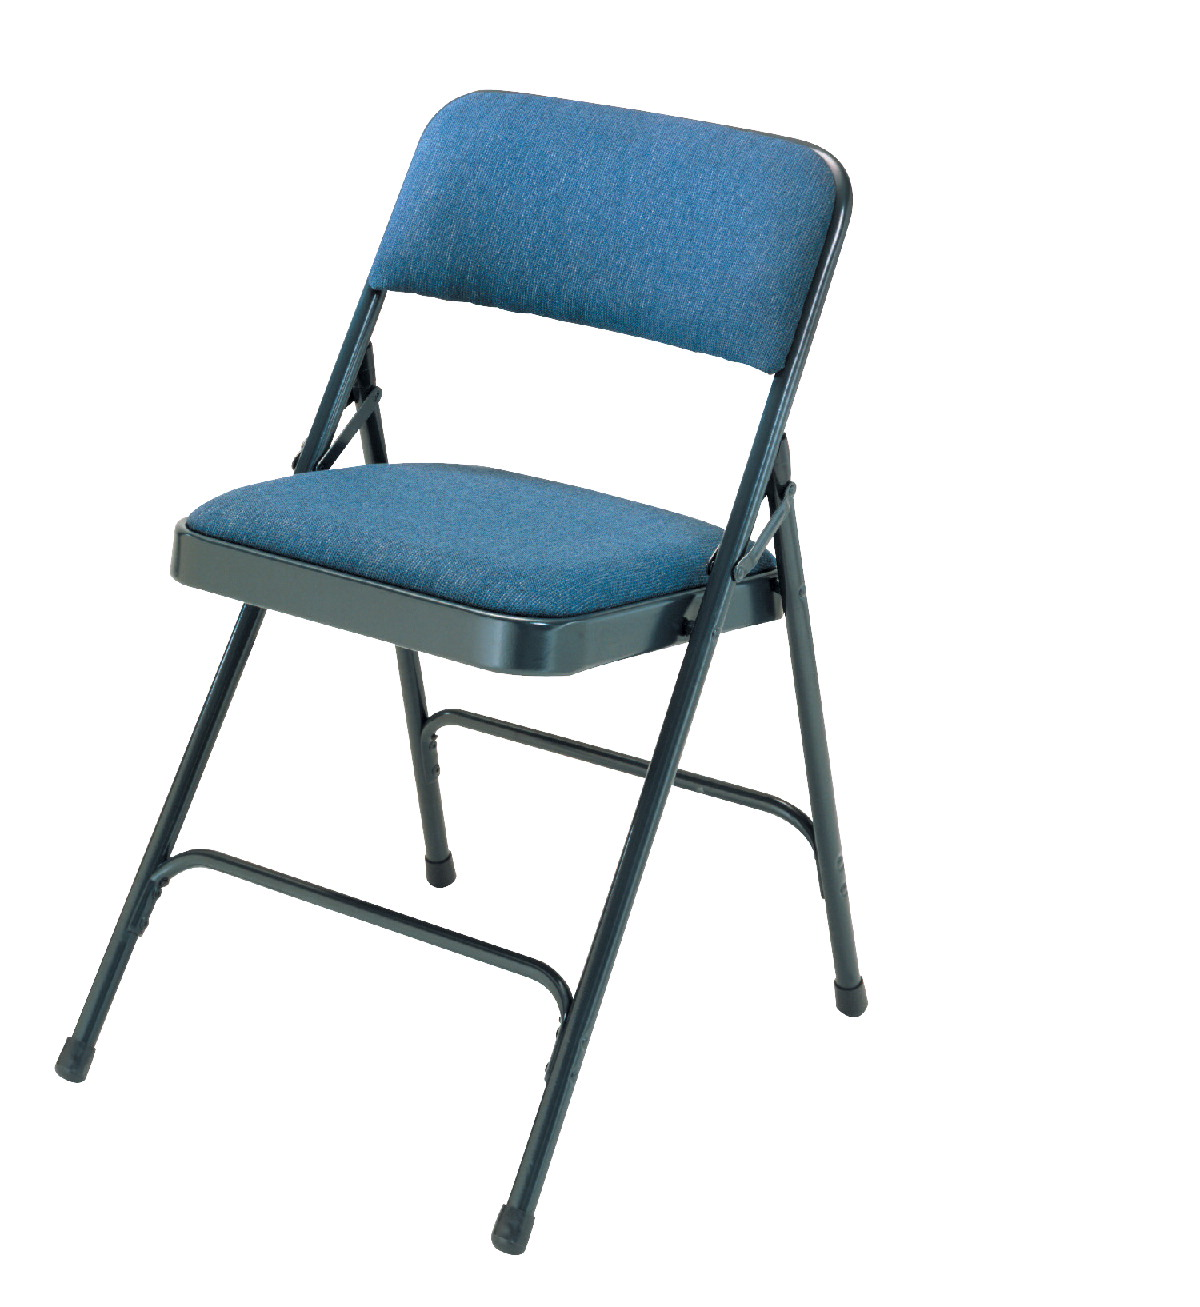 National Public Seating 2200 Series Premium Upholstered Fabric Folding Chair, 17-3/4 Inch Seat, Various Options